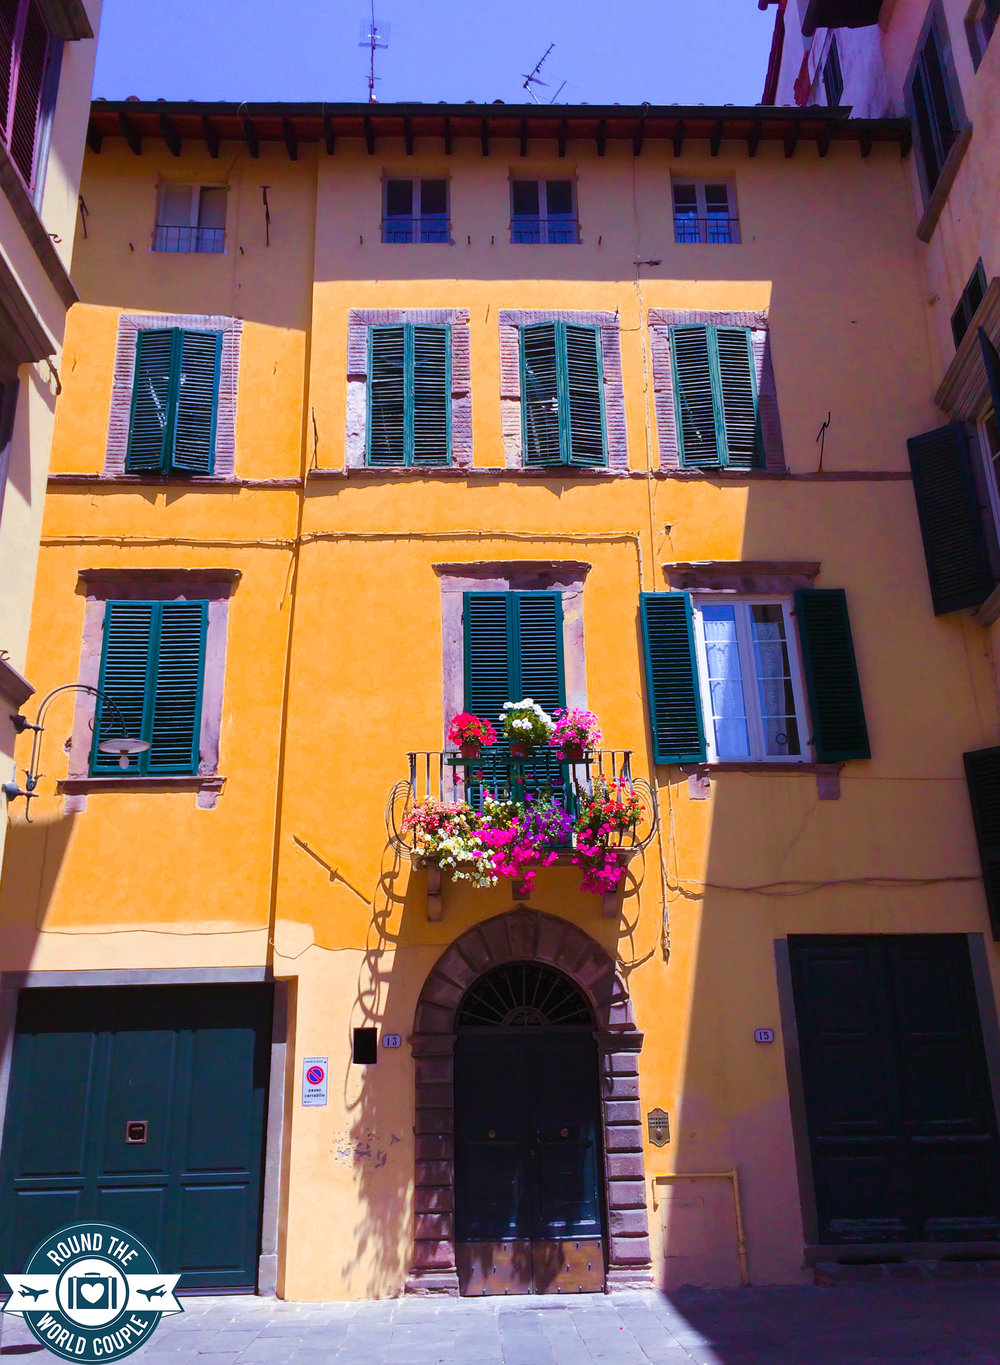 Lucca-1 (1 of 1).jpg